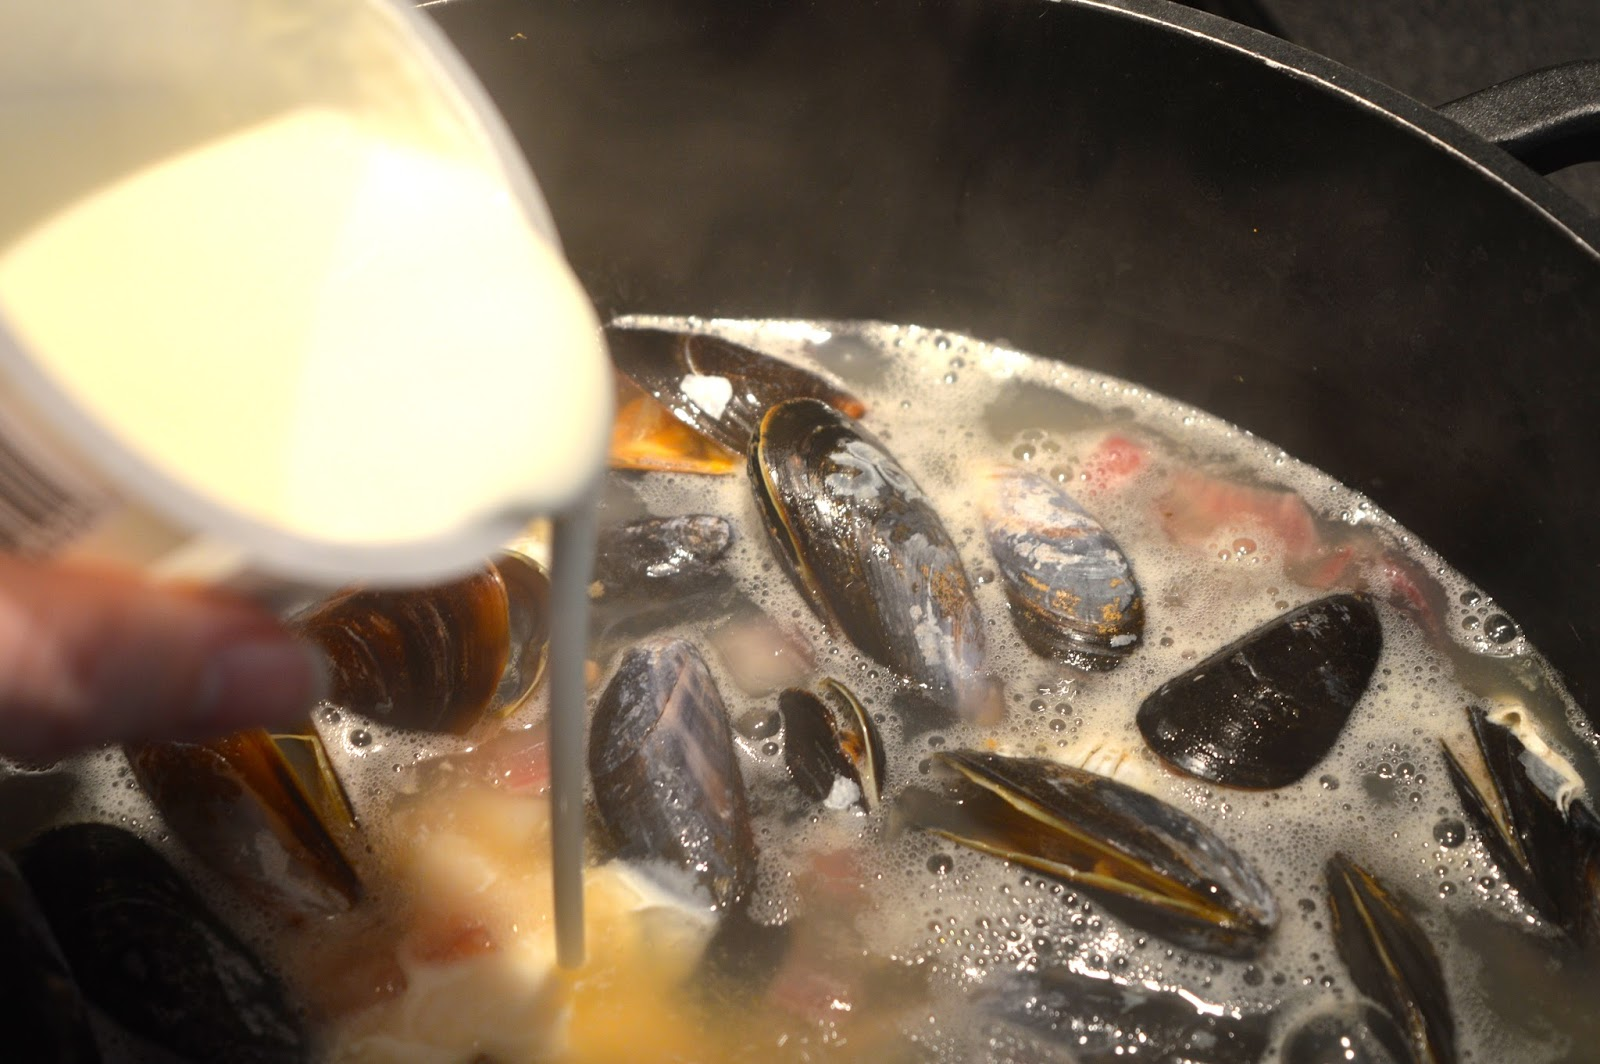 Mussels in cider cream sauce recipe, food bloggers, UK food blog, Hampshire lifestyle blog, Dalry Rose blog